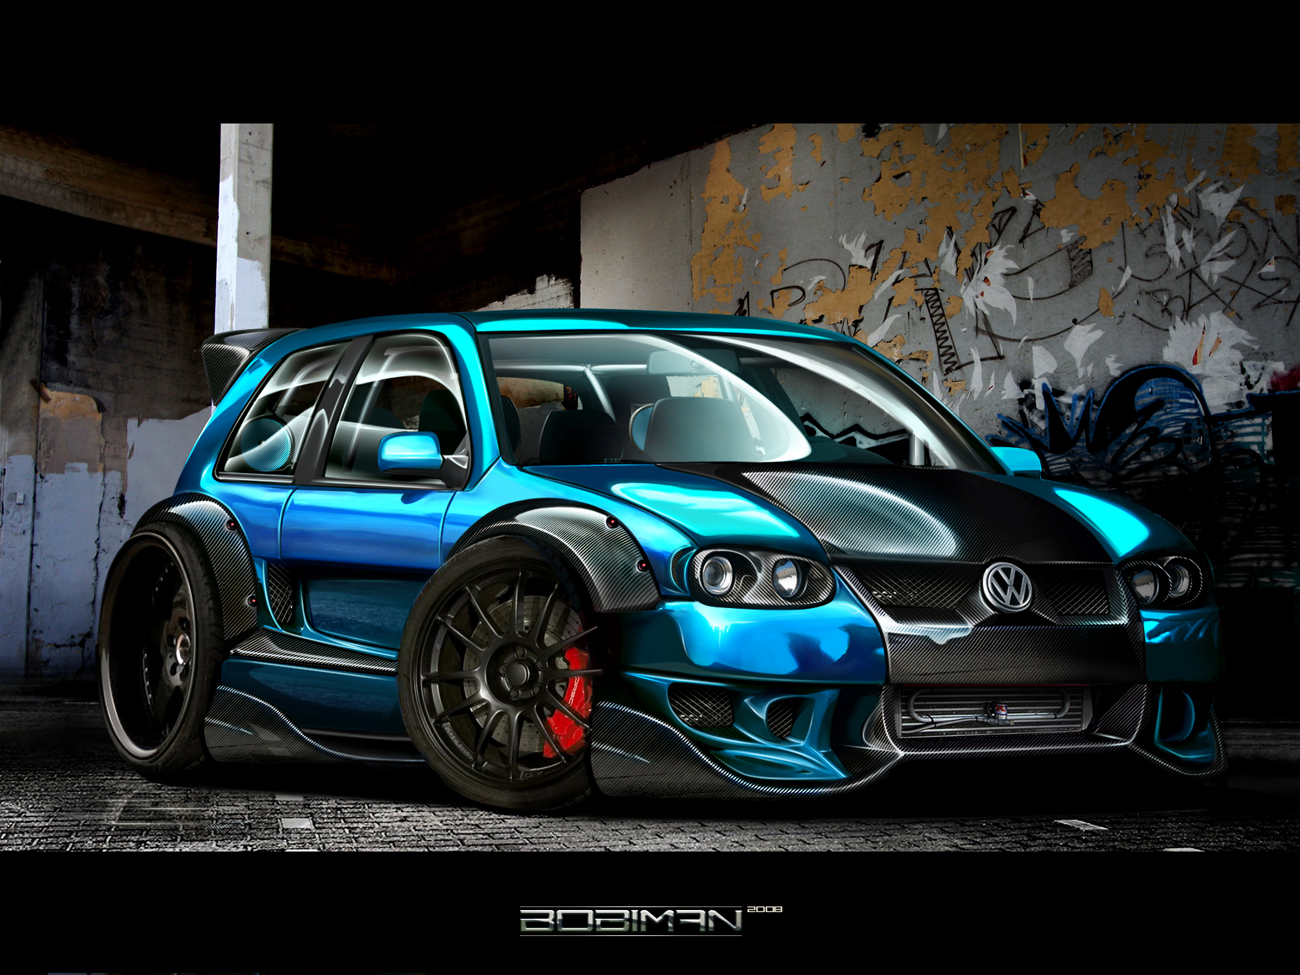 Wallpapers Facebook Cover Animated Car Wallpaper: cool cars wallpapers